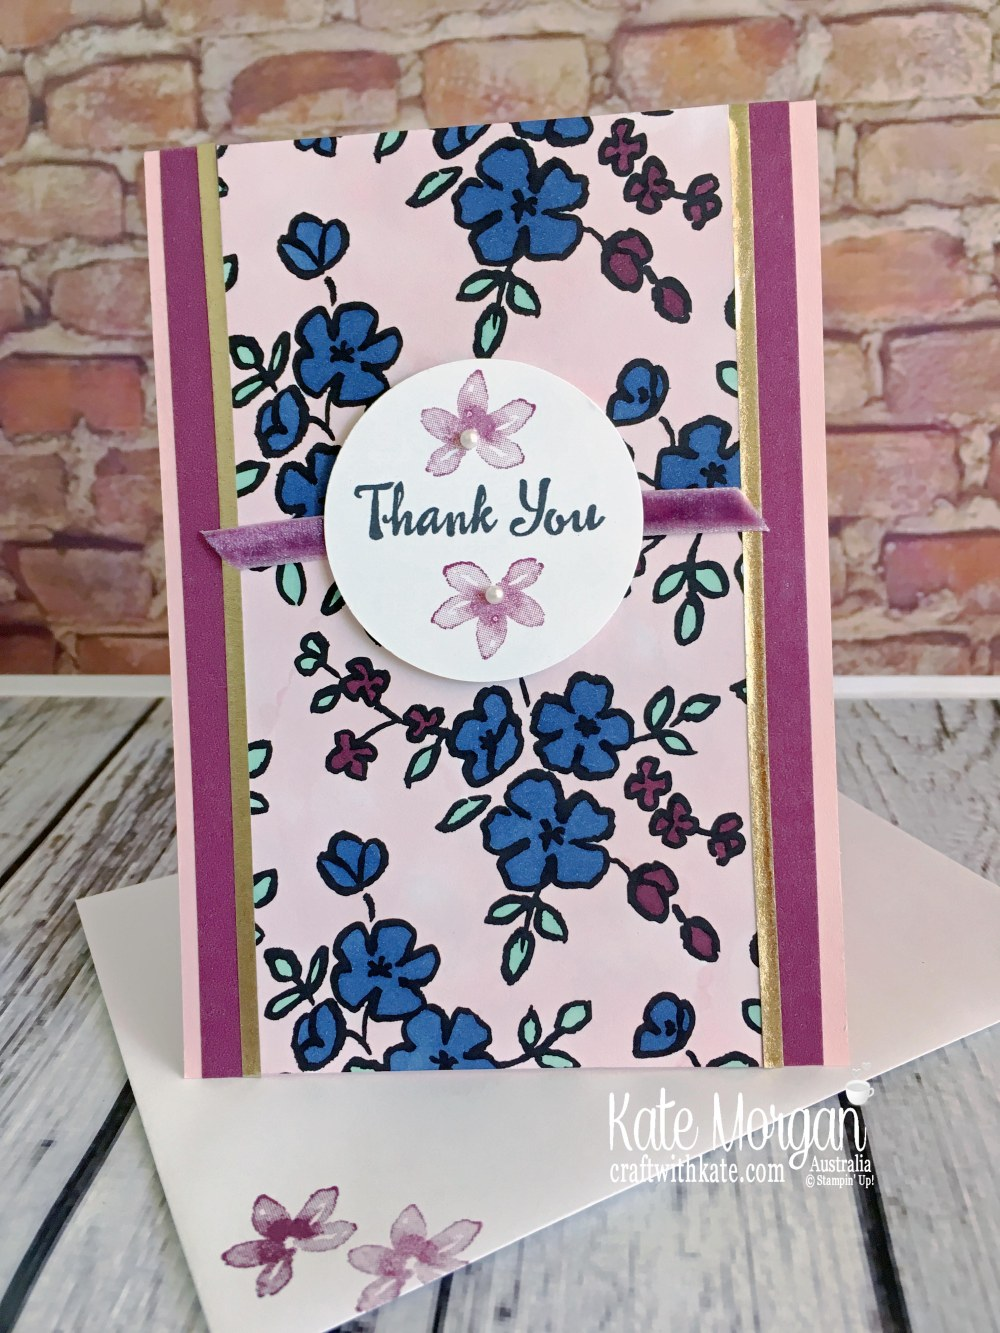 Thank you card using Stampin Up Petal Palette by Kate Morgan, Australia 2018.JPG